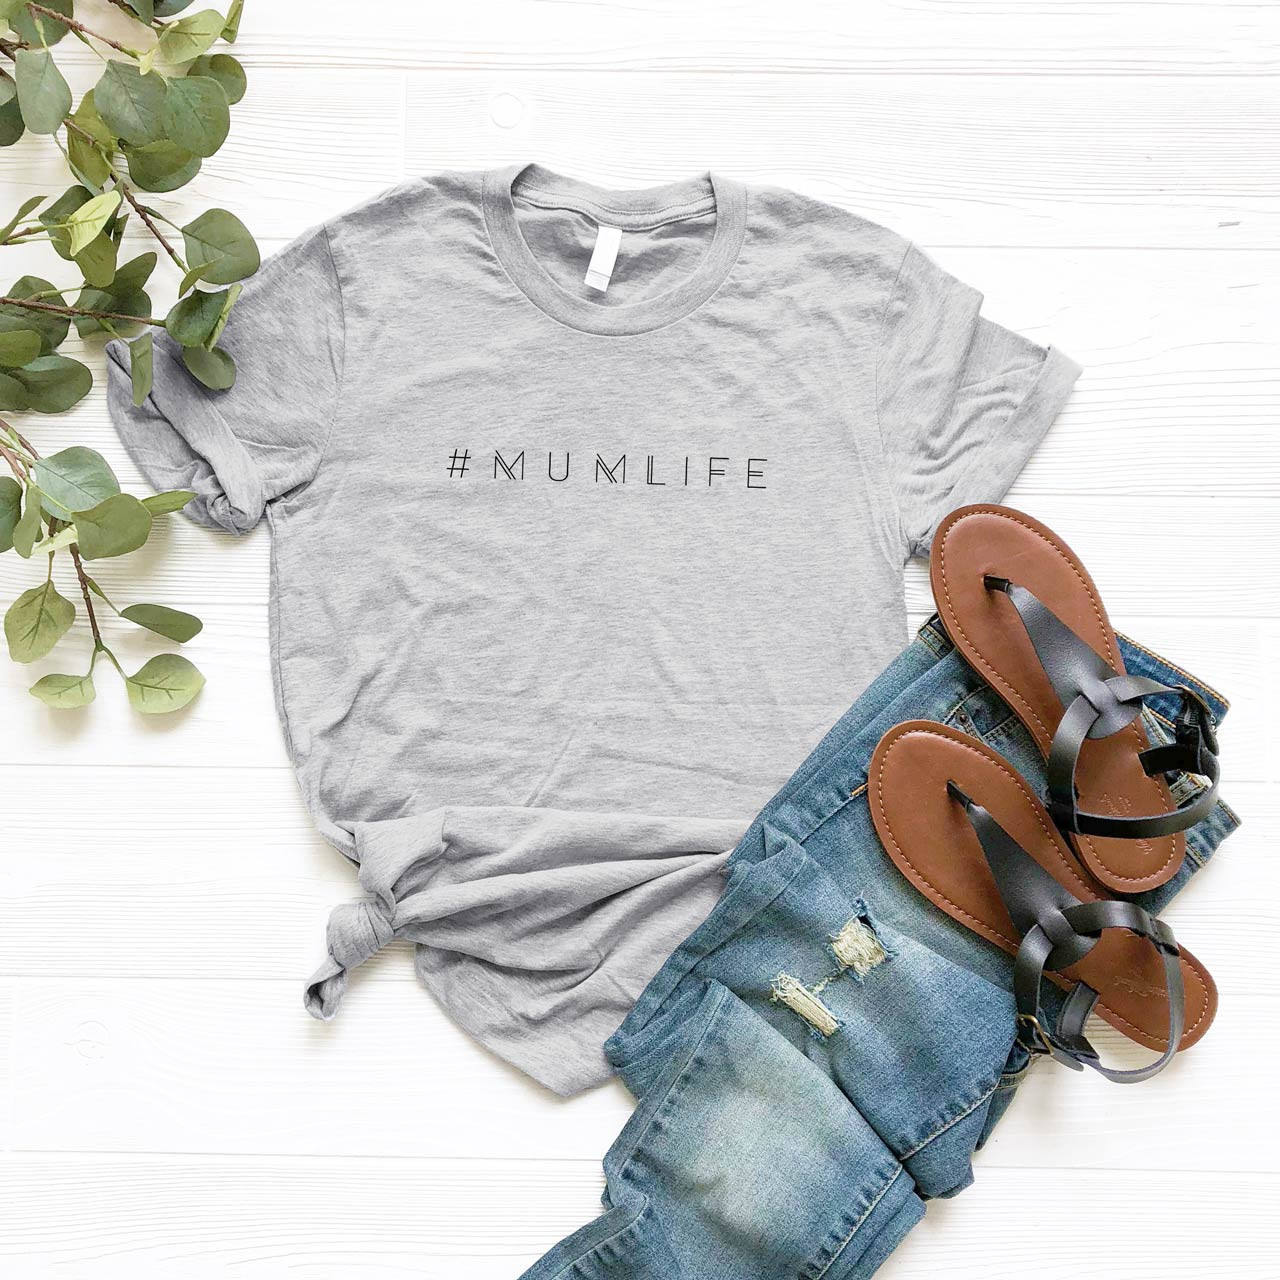 #MUMLIFE Cotton T-Shirt (Black on Gray) from The Printed Home